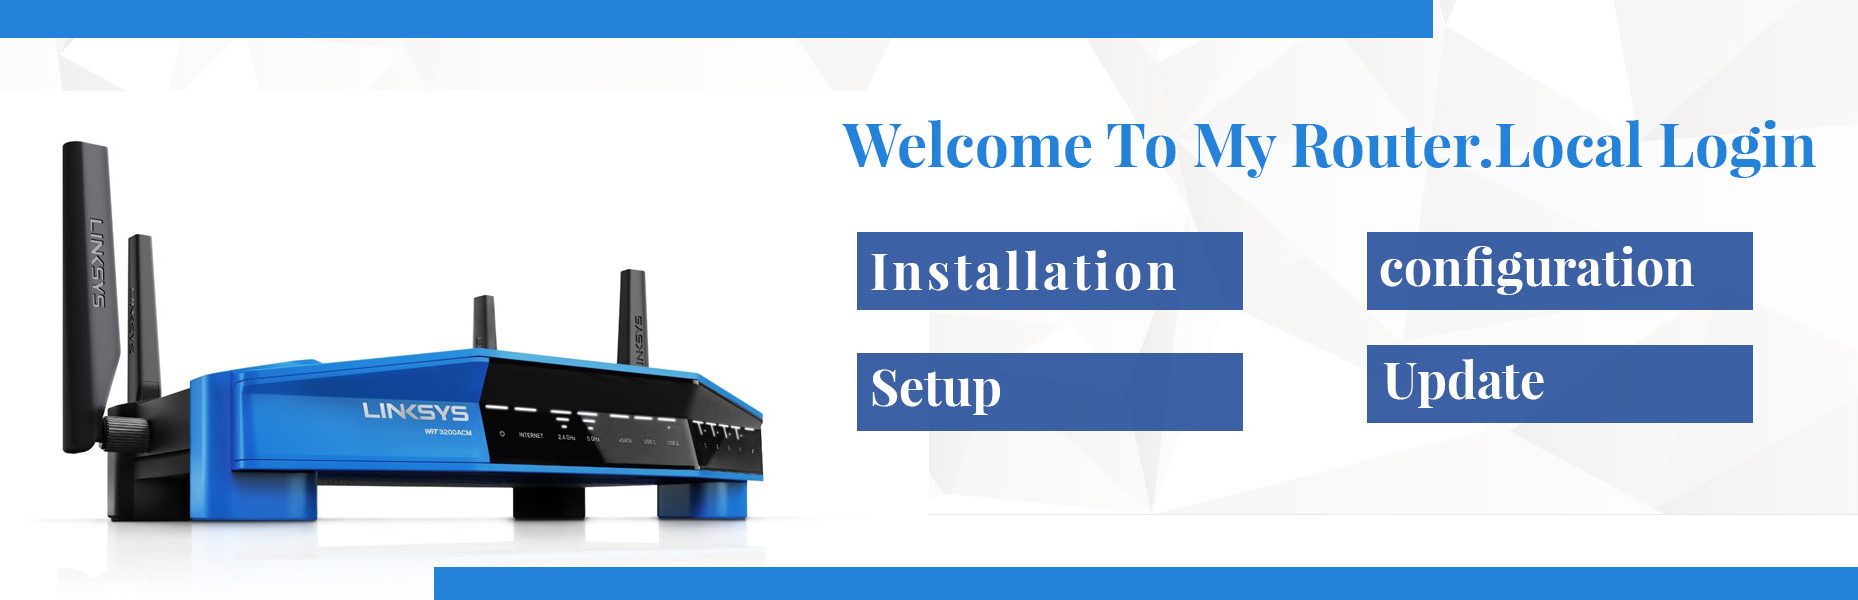 Set up a Linksys Router with Cable Internet Service - Router